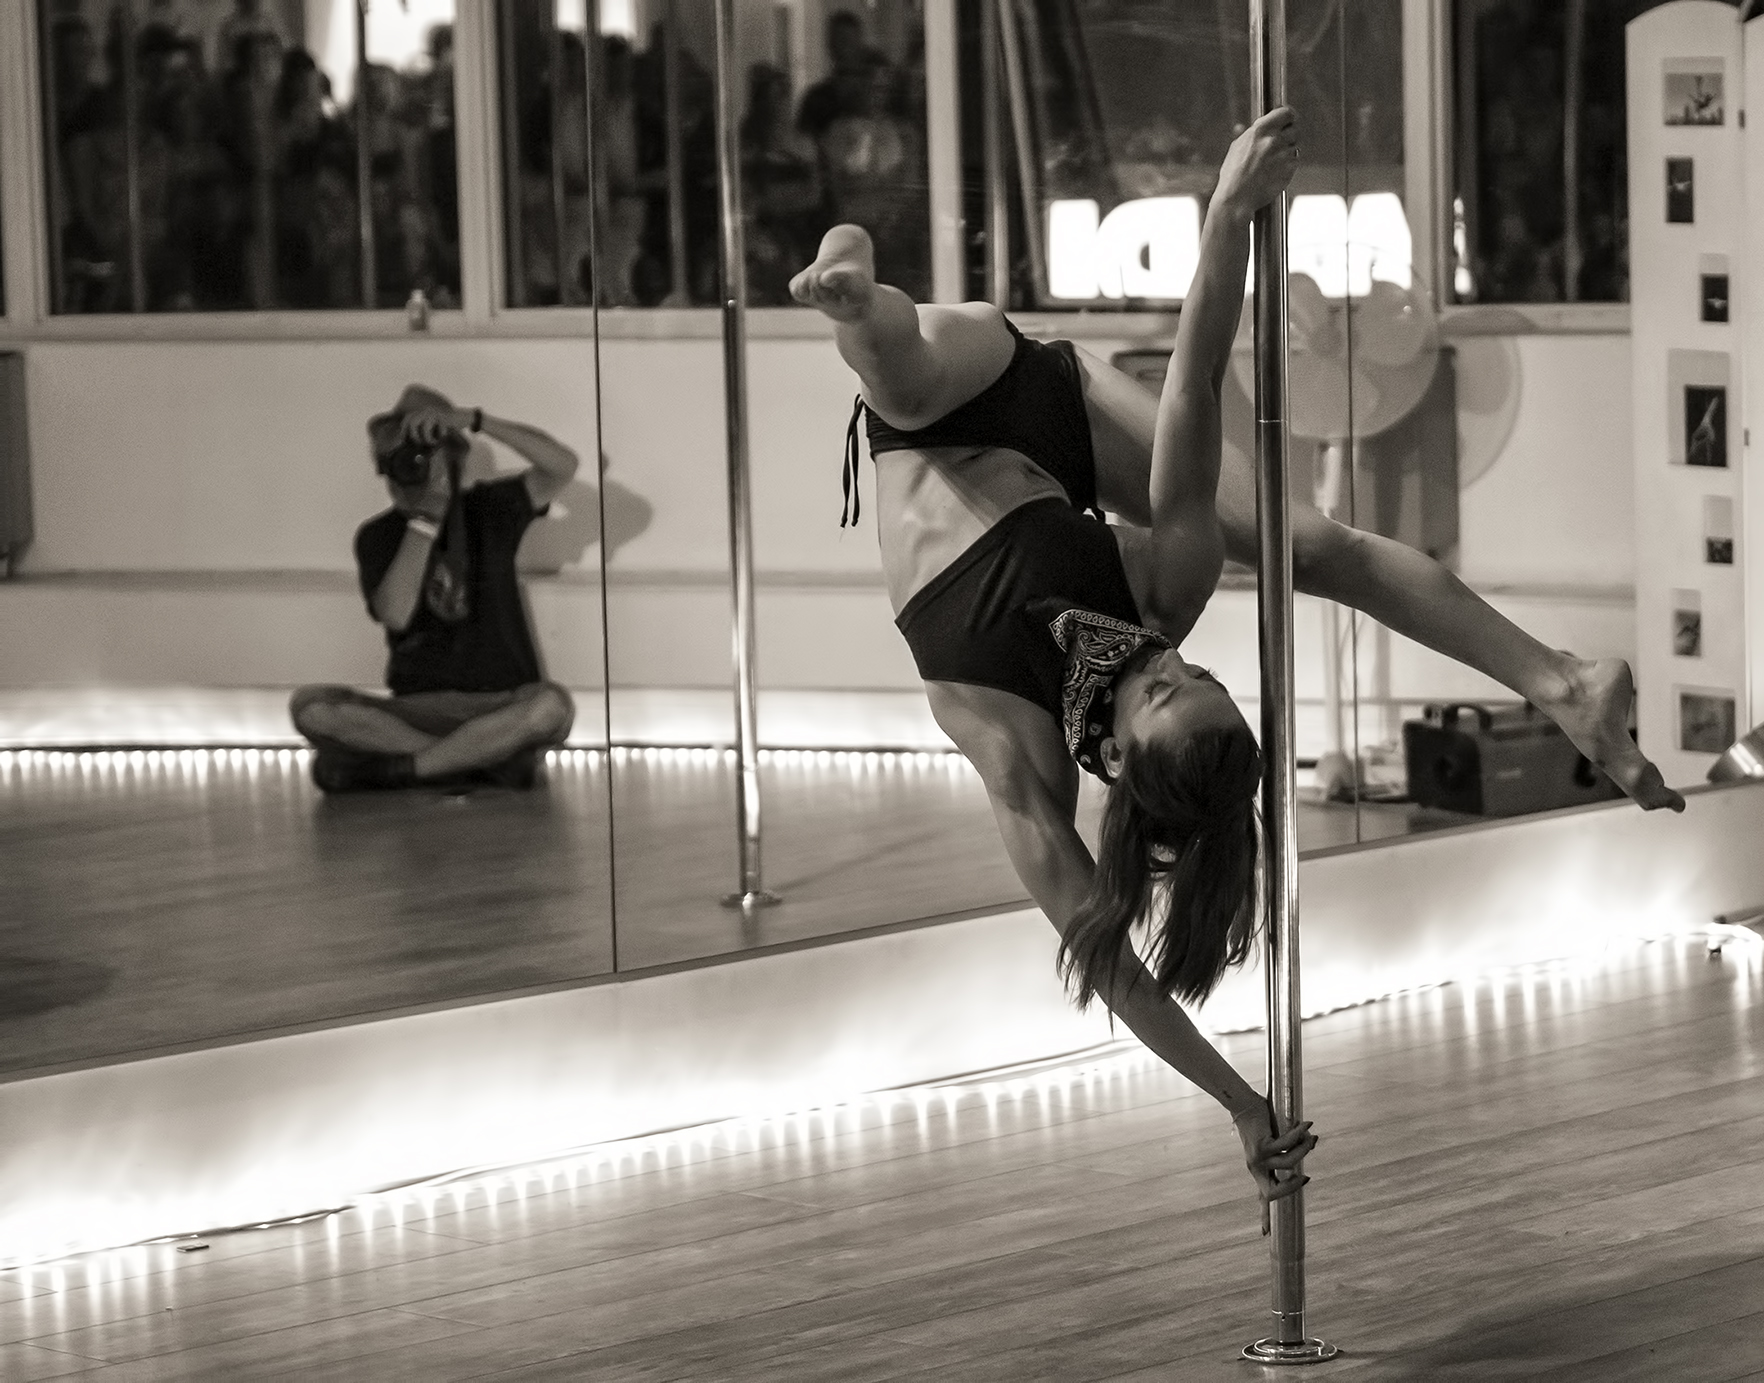 raul-bueno-clases-pole-dance-madrid